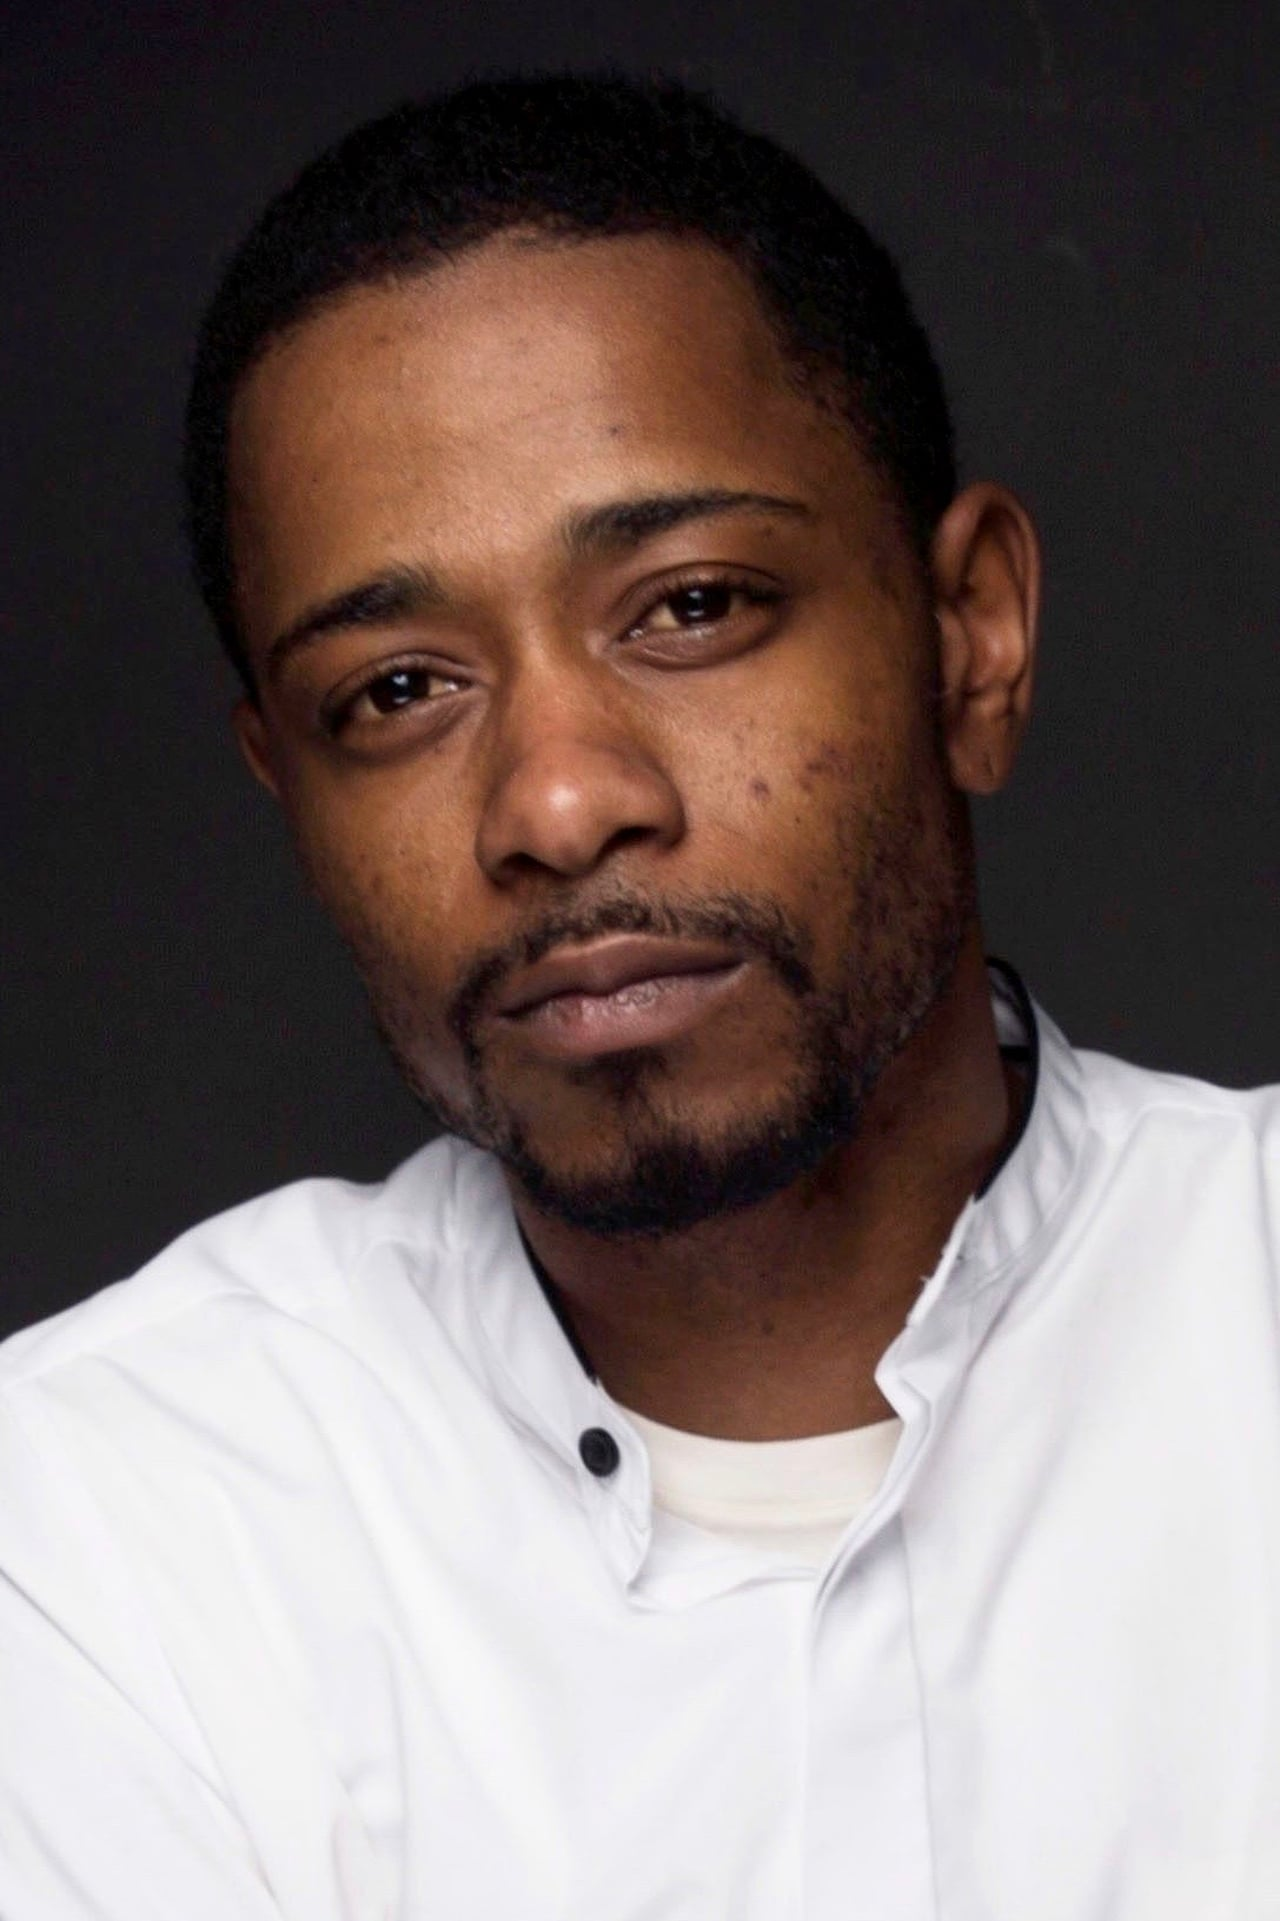 Lakeith Stanfield is